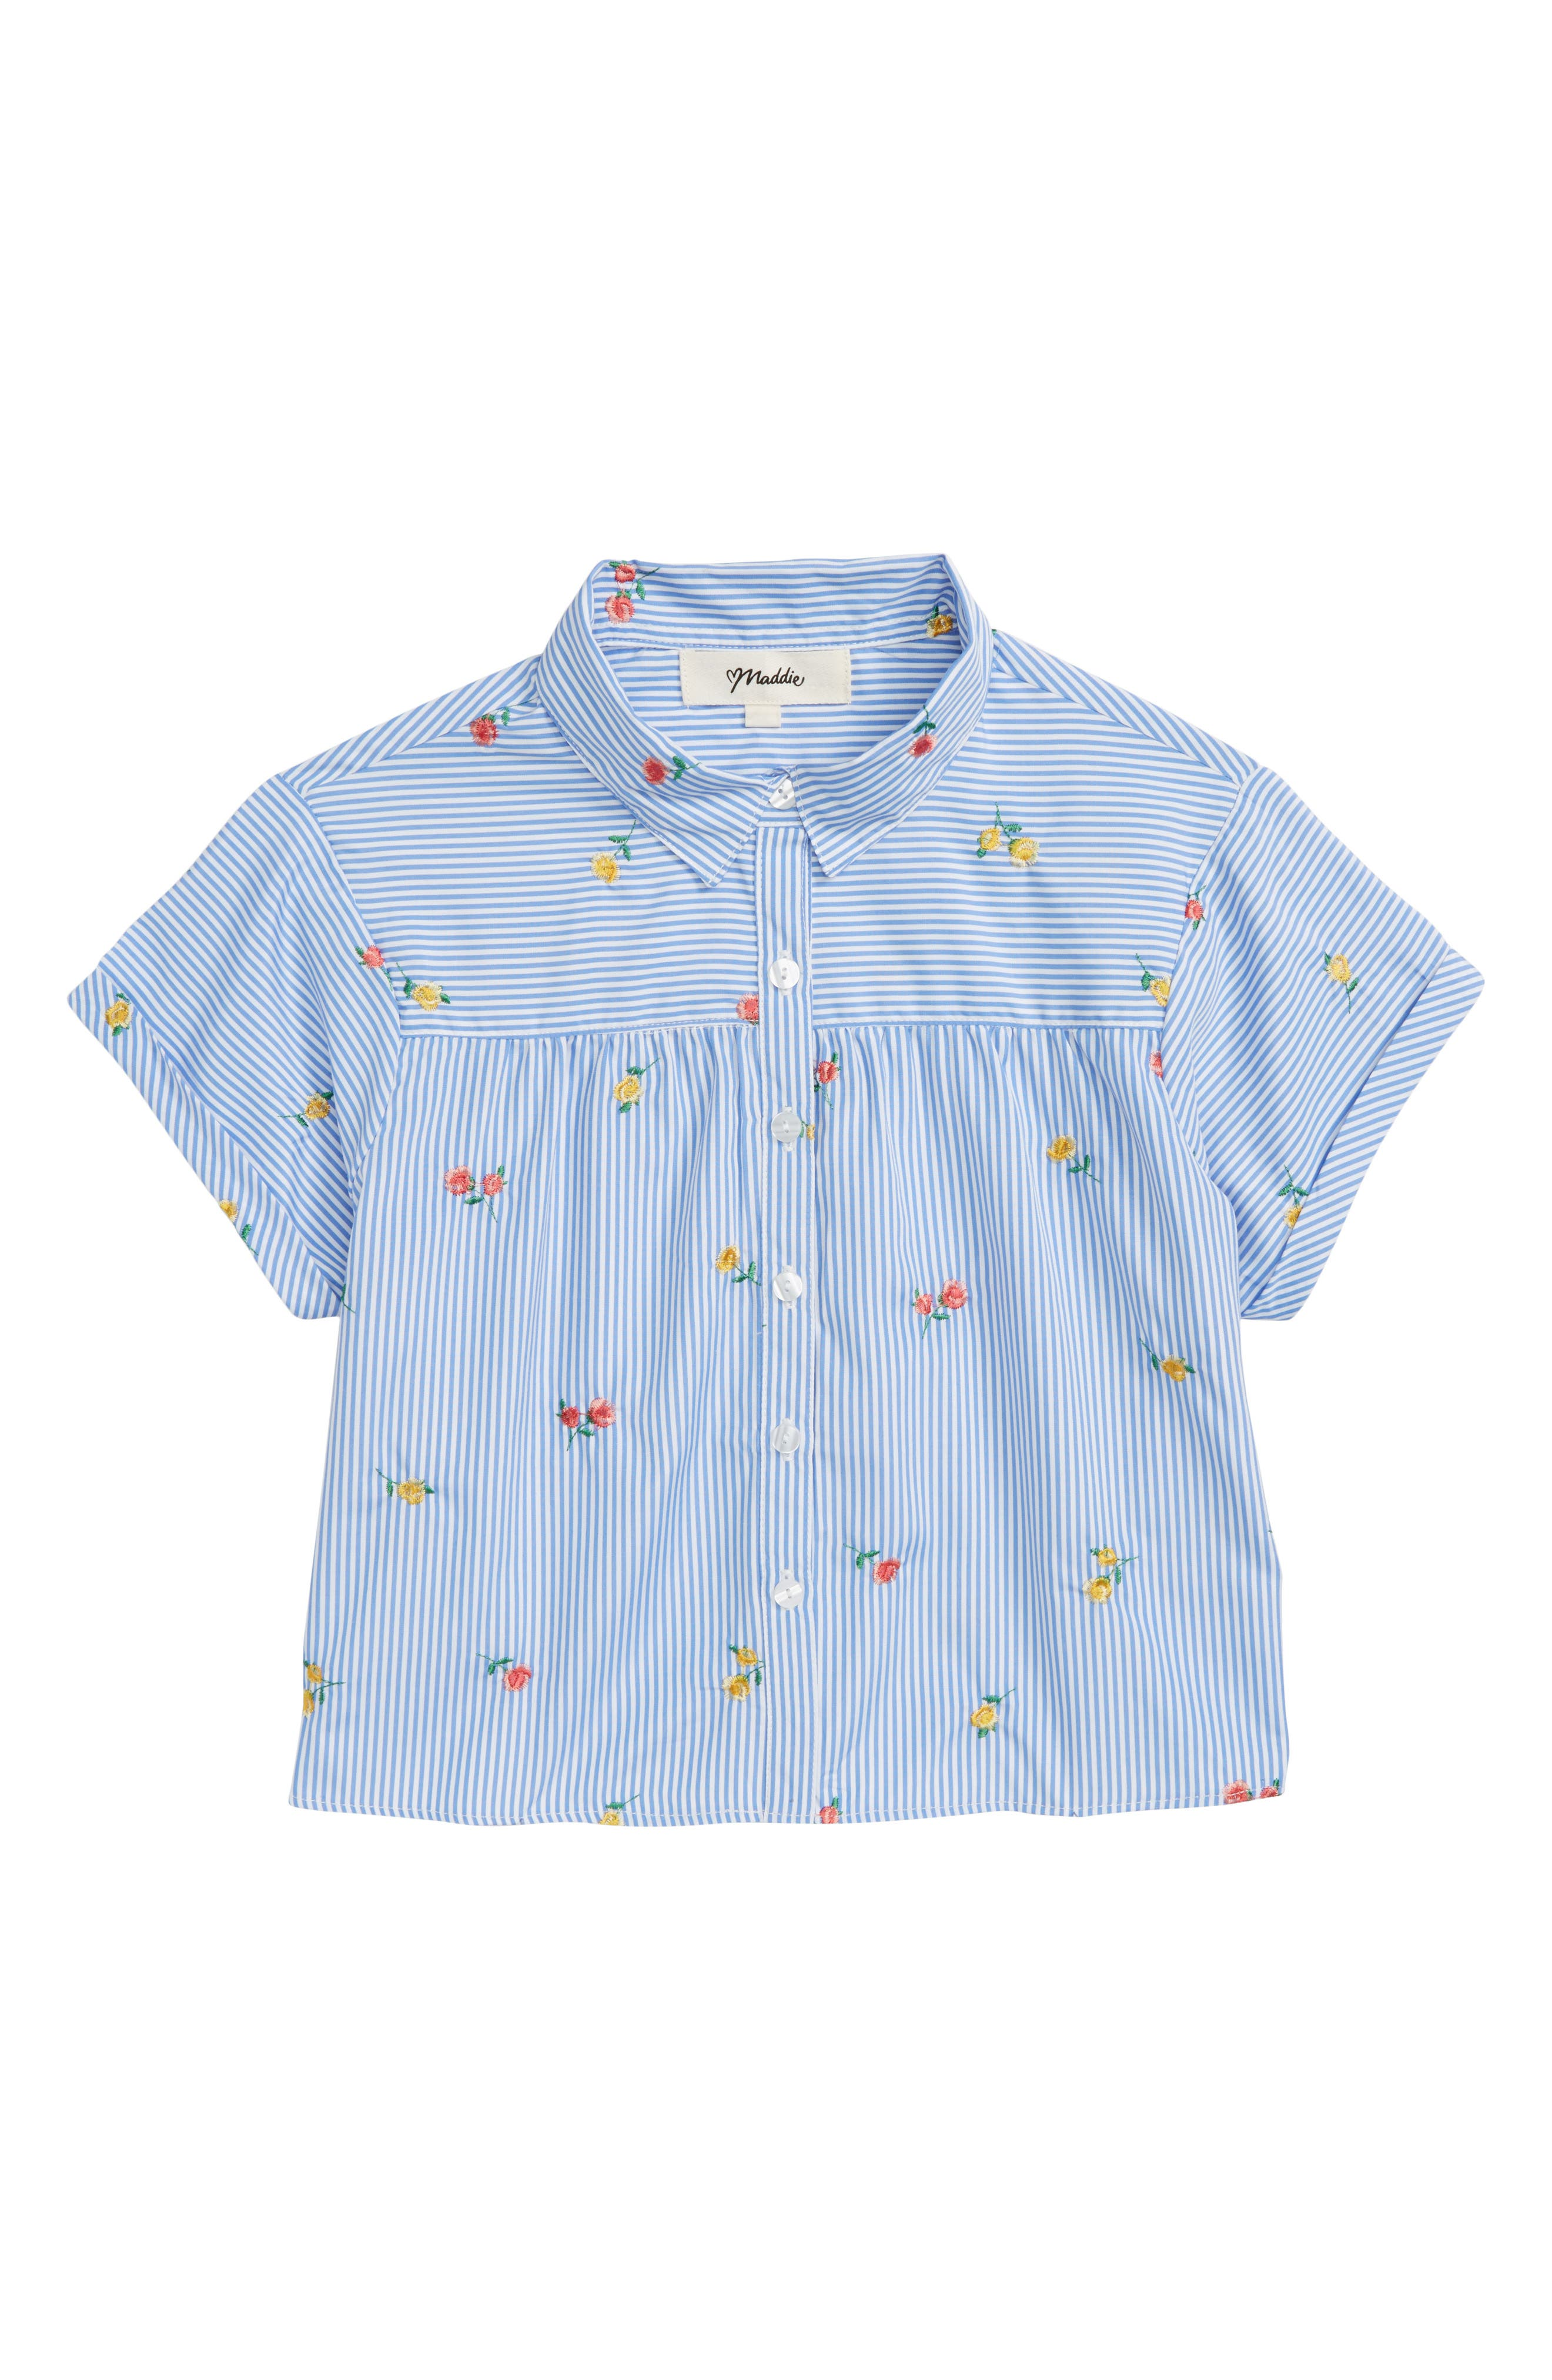 Floral Embroidery Stripe Shirt,                         Main,                         color, Light Blue/ White